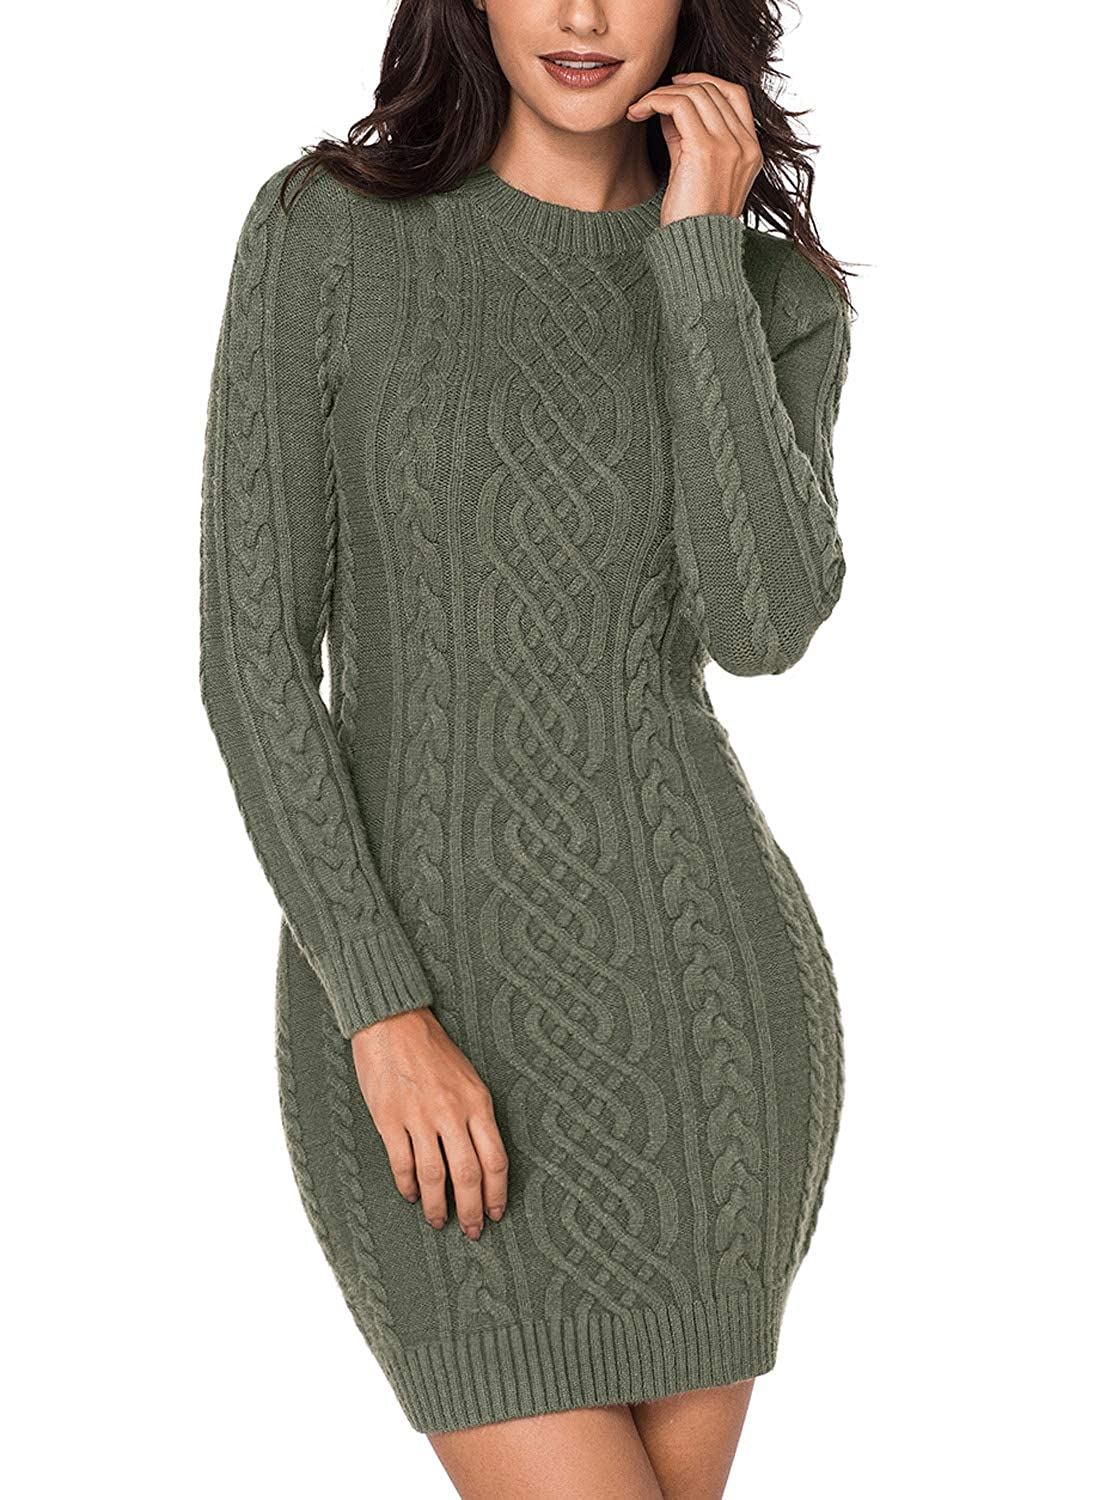 Sidefeel Women Asymmetric Buttoned Cable Knit Bodycon Mini Sweater Dress Jumper HX27864